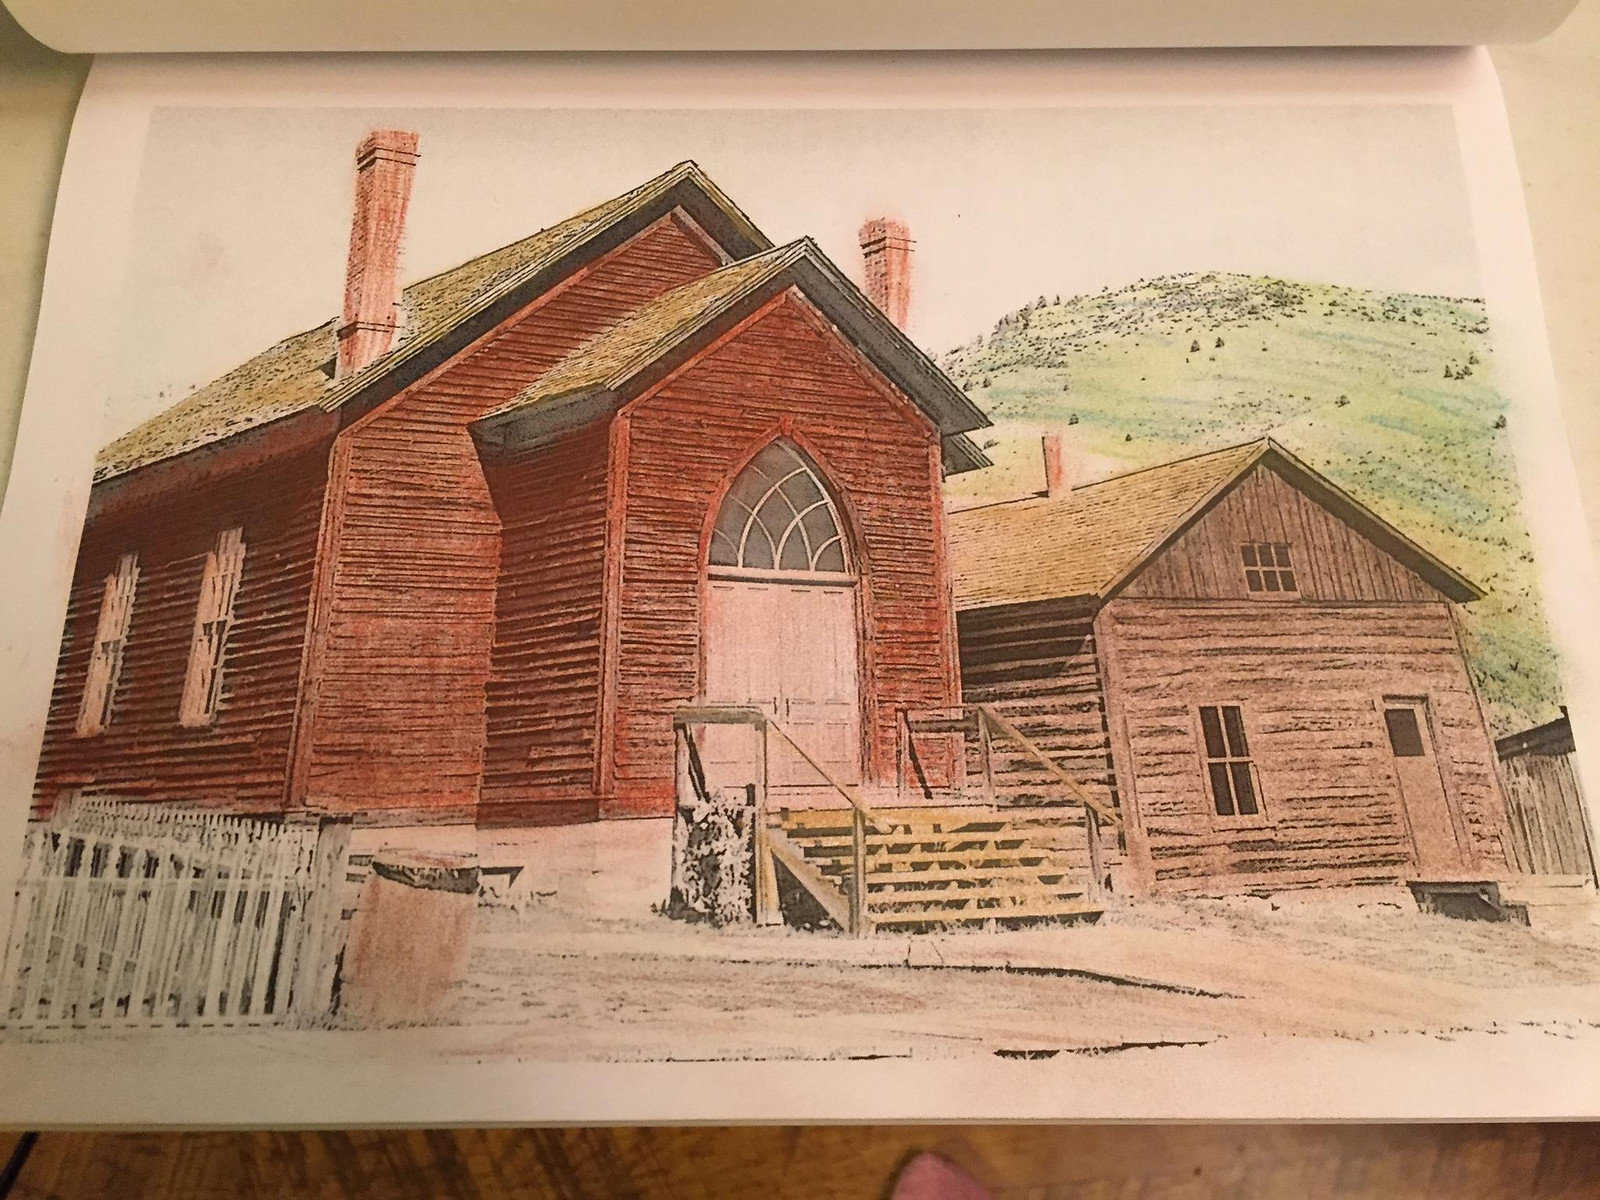 Bannack Ghost Town is one of the downloadabel pages in the Montana Coloring Pages collection.